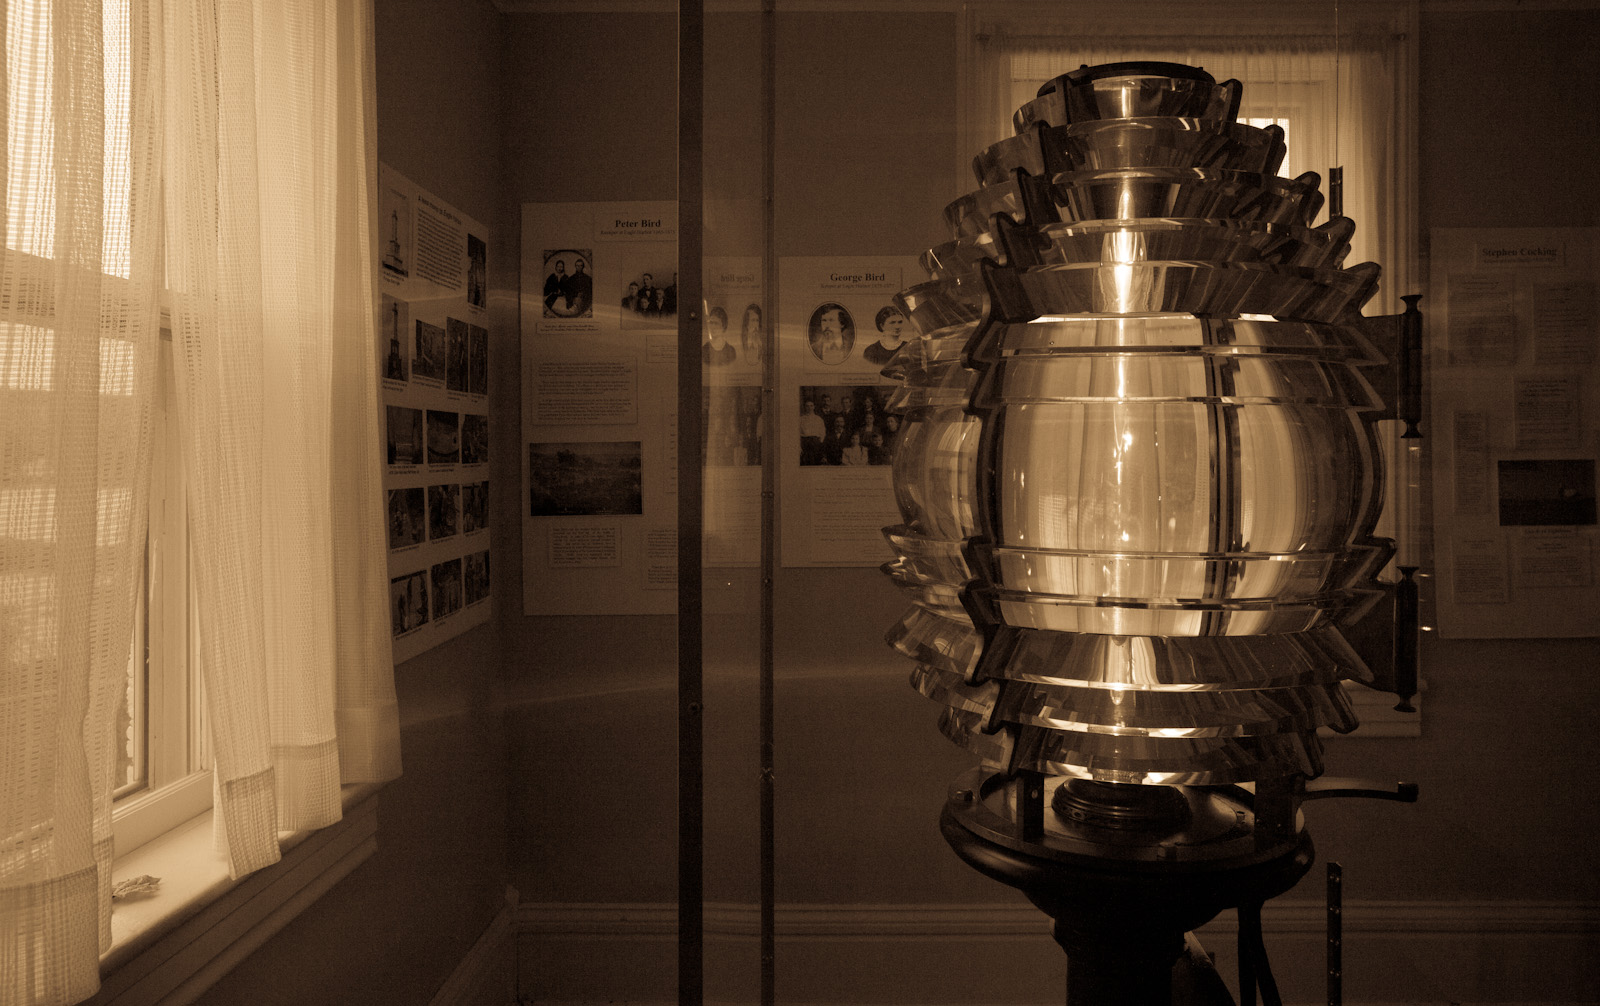 Fresnel Lens At Eagle Harbor Lighthouse<br>(Keweenaw_101312_083-3.jpg)